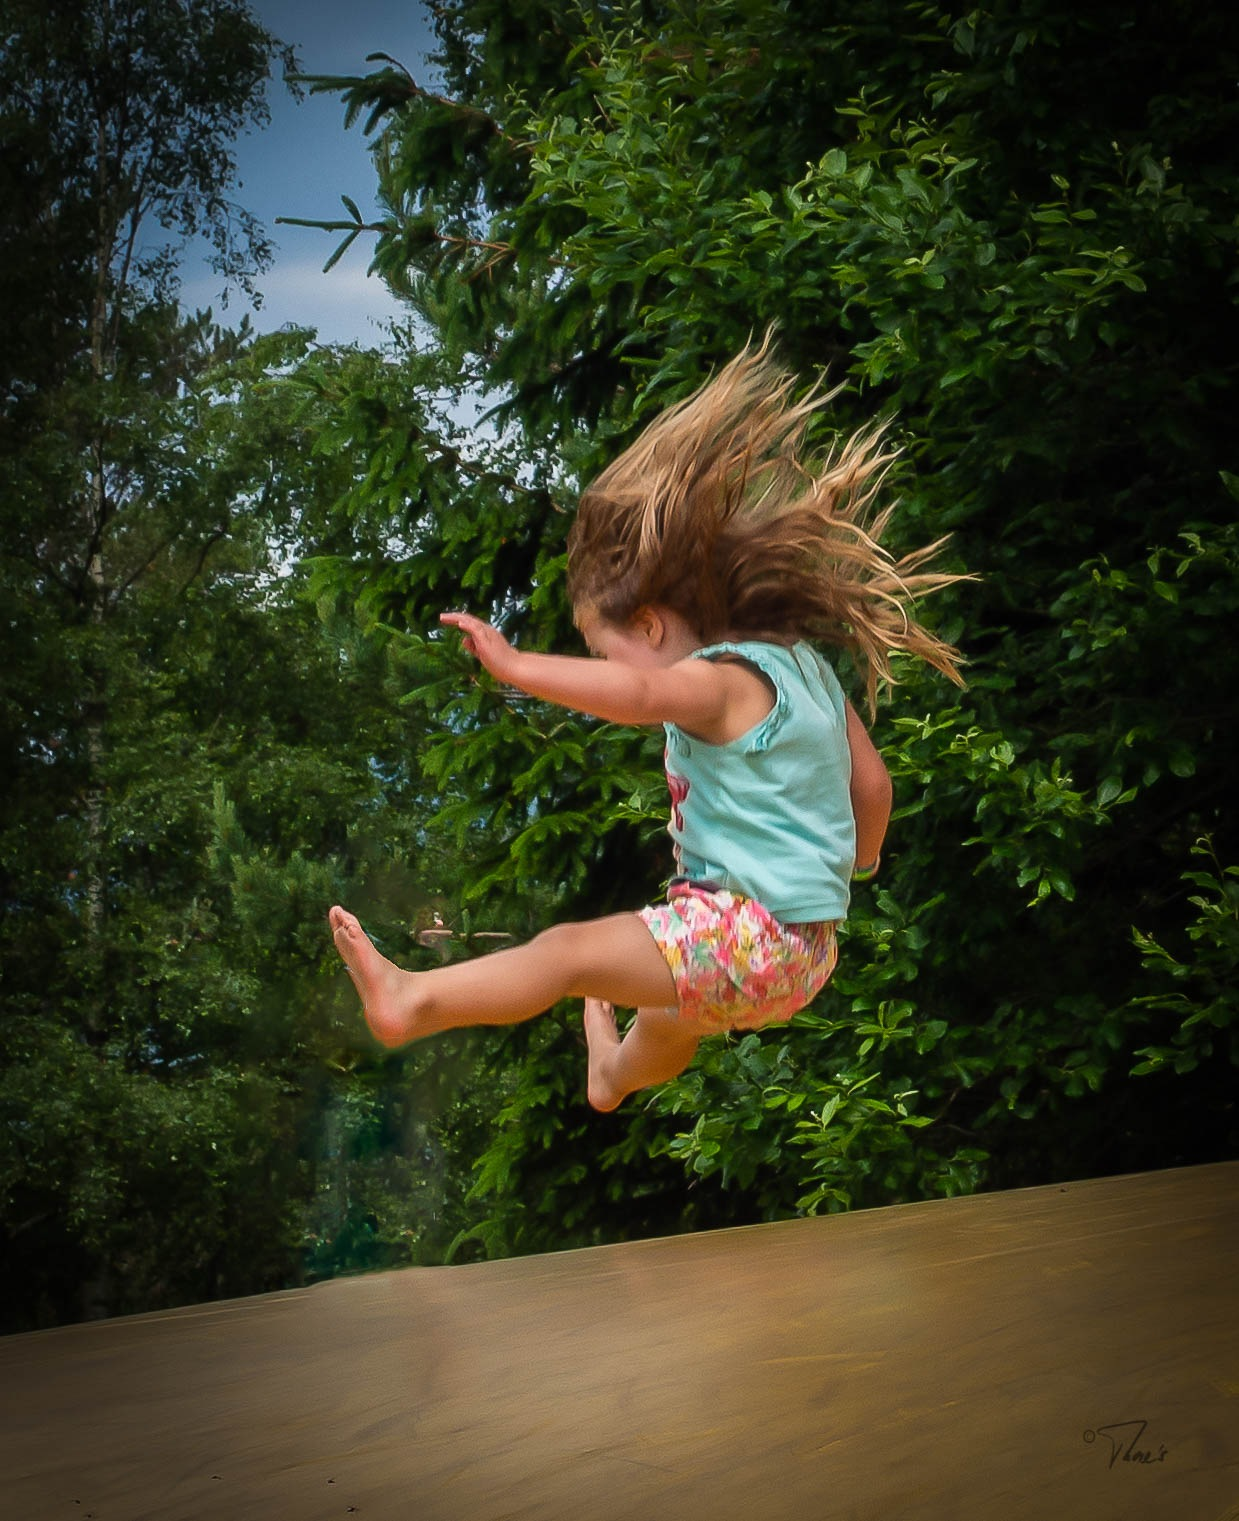 jumping by Thore's photo